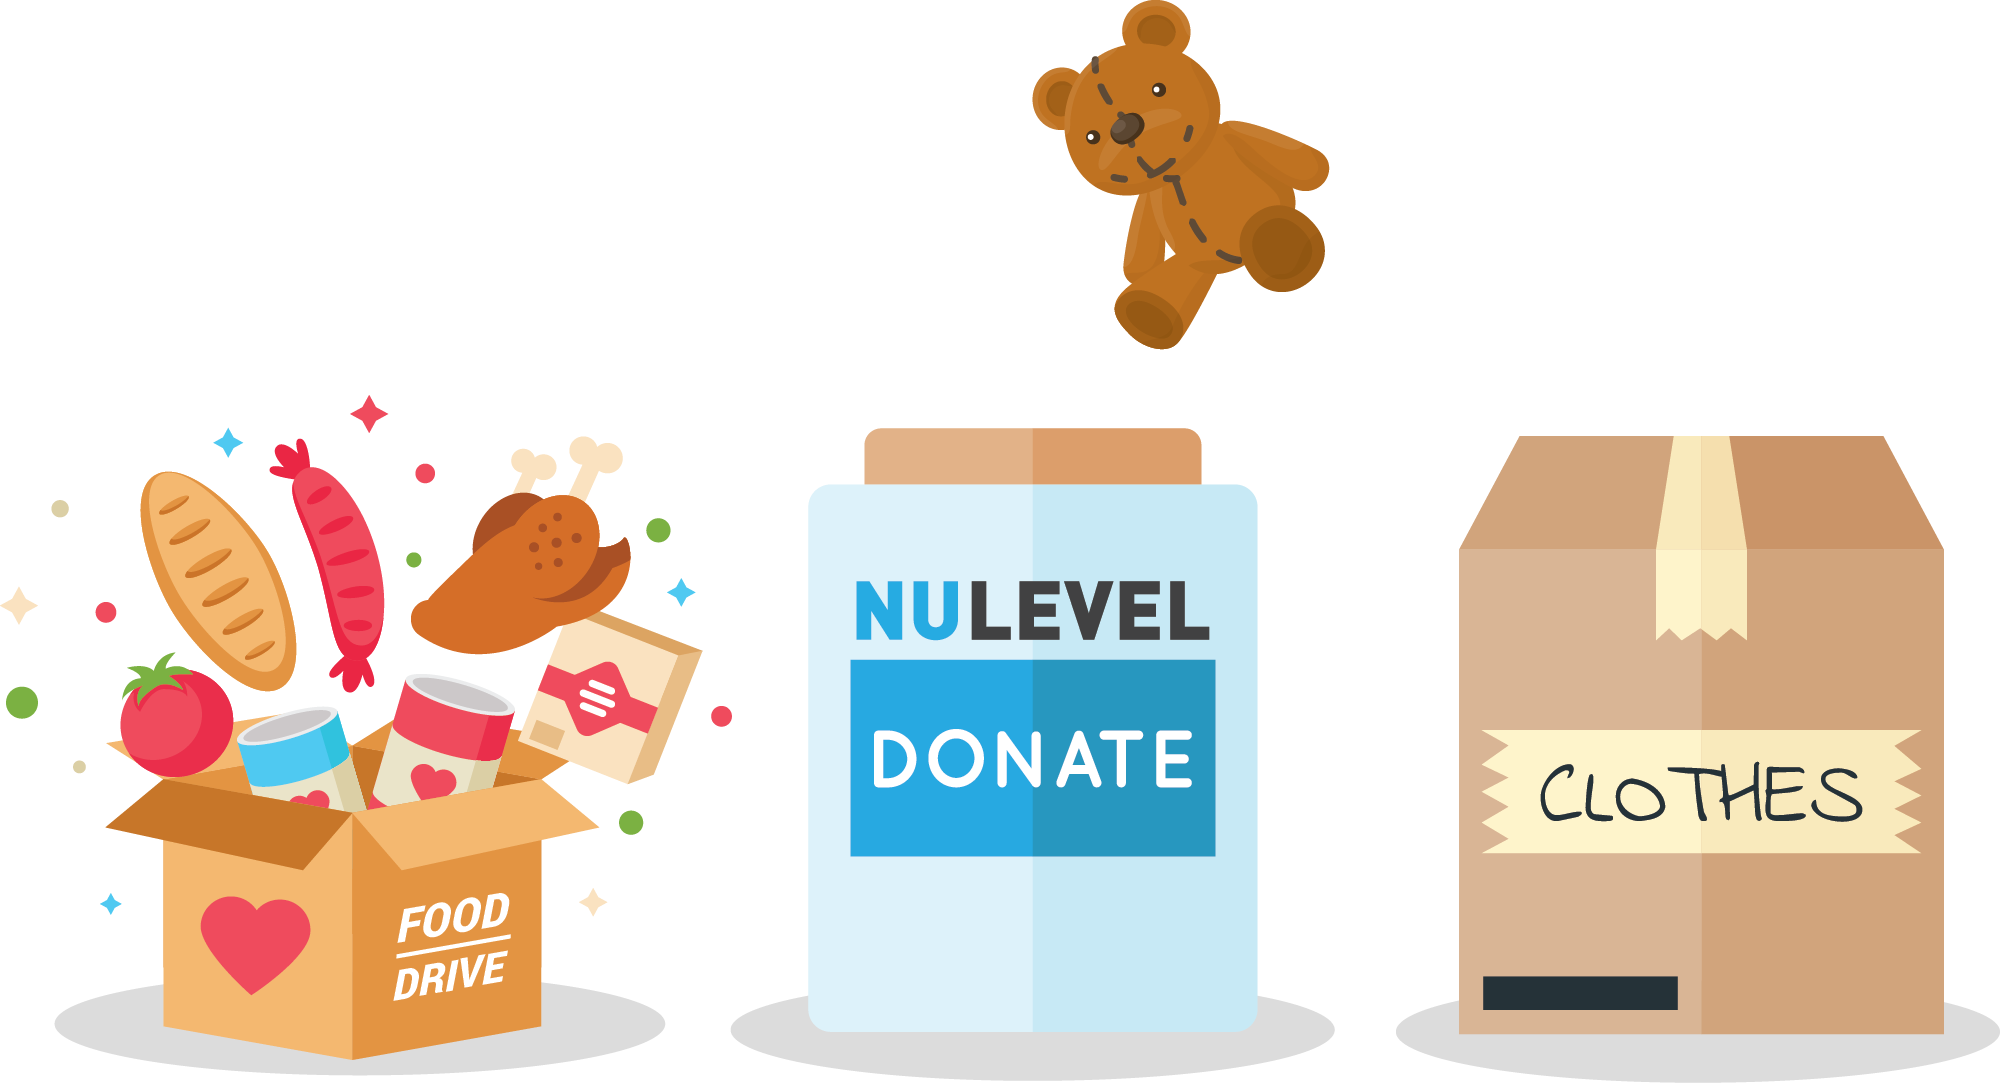 Donation Drives - We organize pledge and donation drives year-round for food, toys, and clothes. For the holidays,our employees make a special push for donations. We are grateful to the amazing local charities and shelters in the Bay Area who work hard every day for families in need.